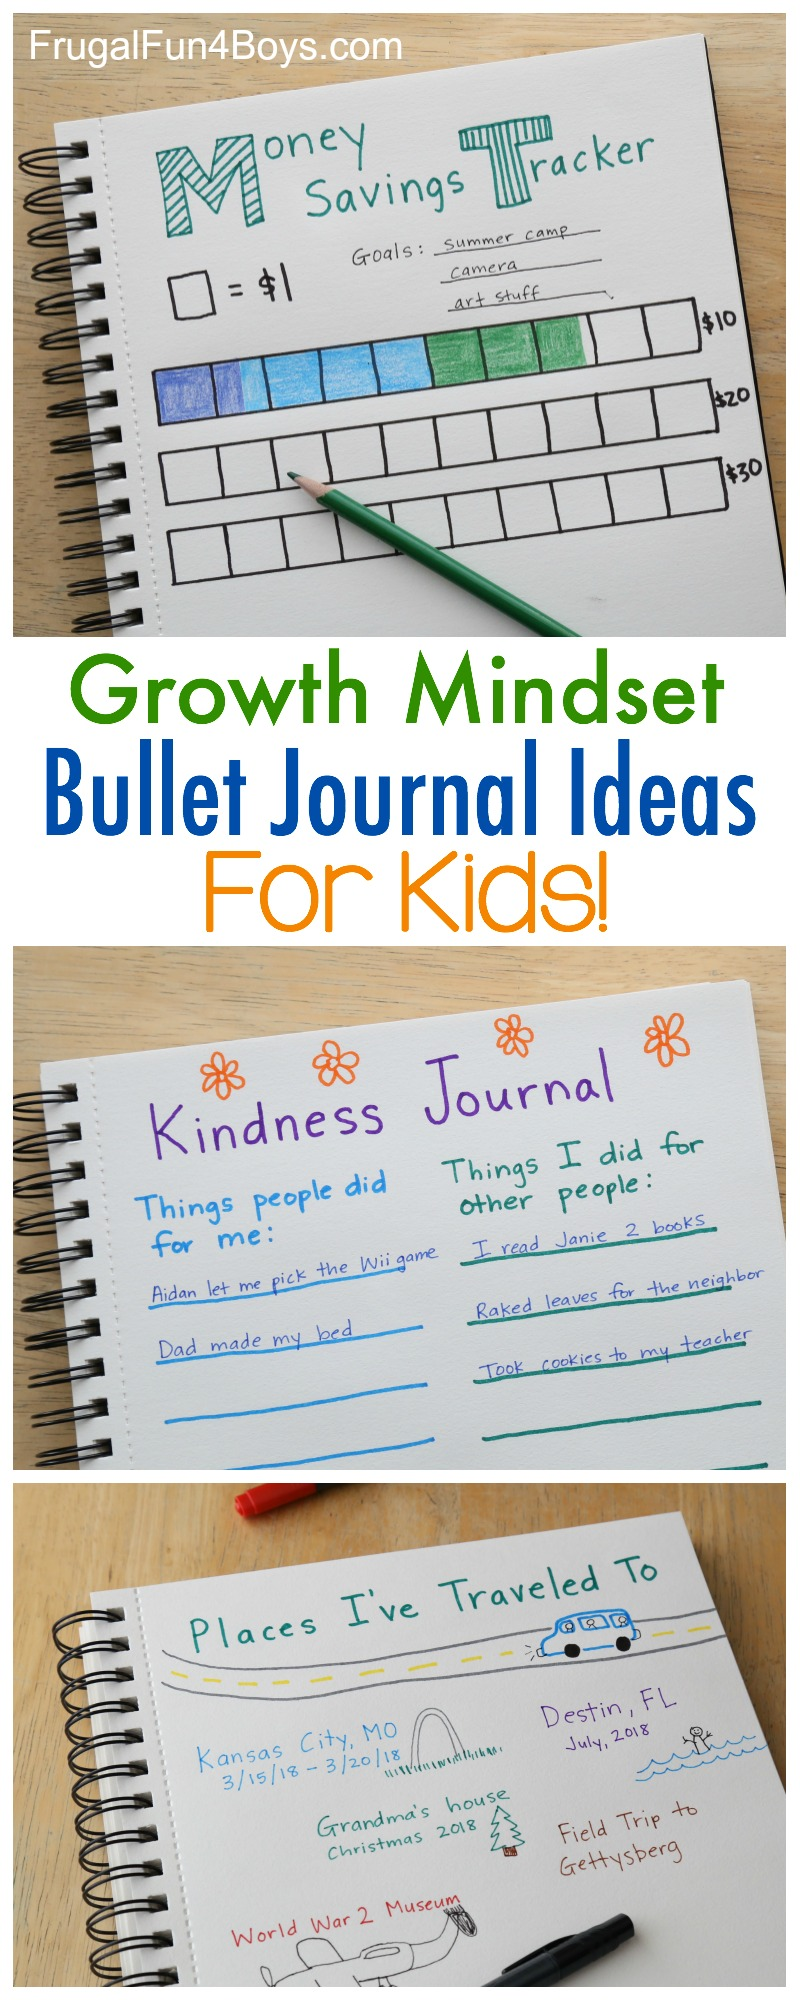 Growth mindset bullet journal ideas for kids so what can kids do with a bullet journal solutioingenieria Image collections